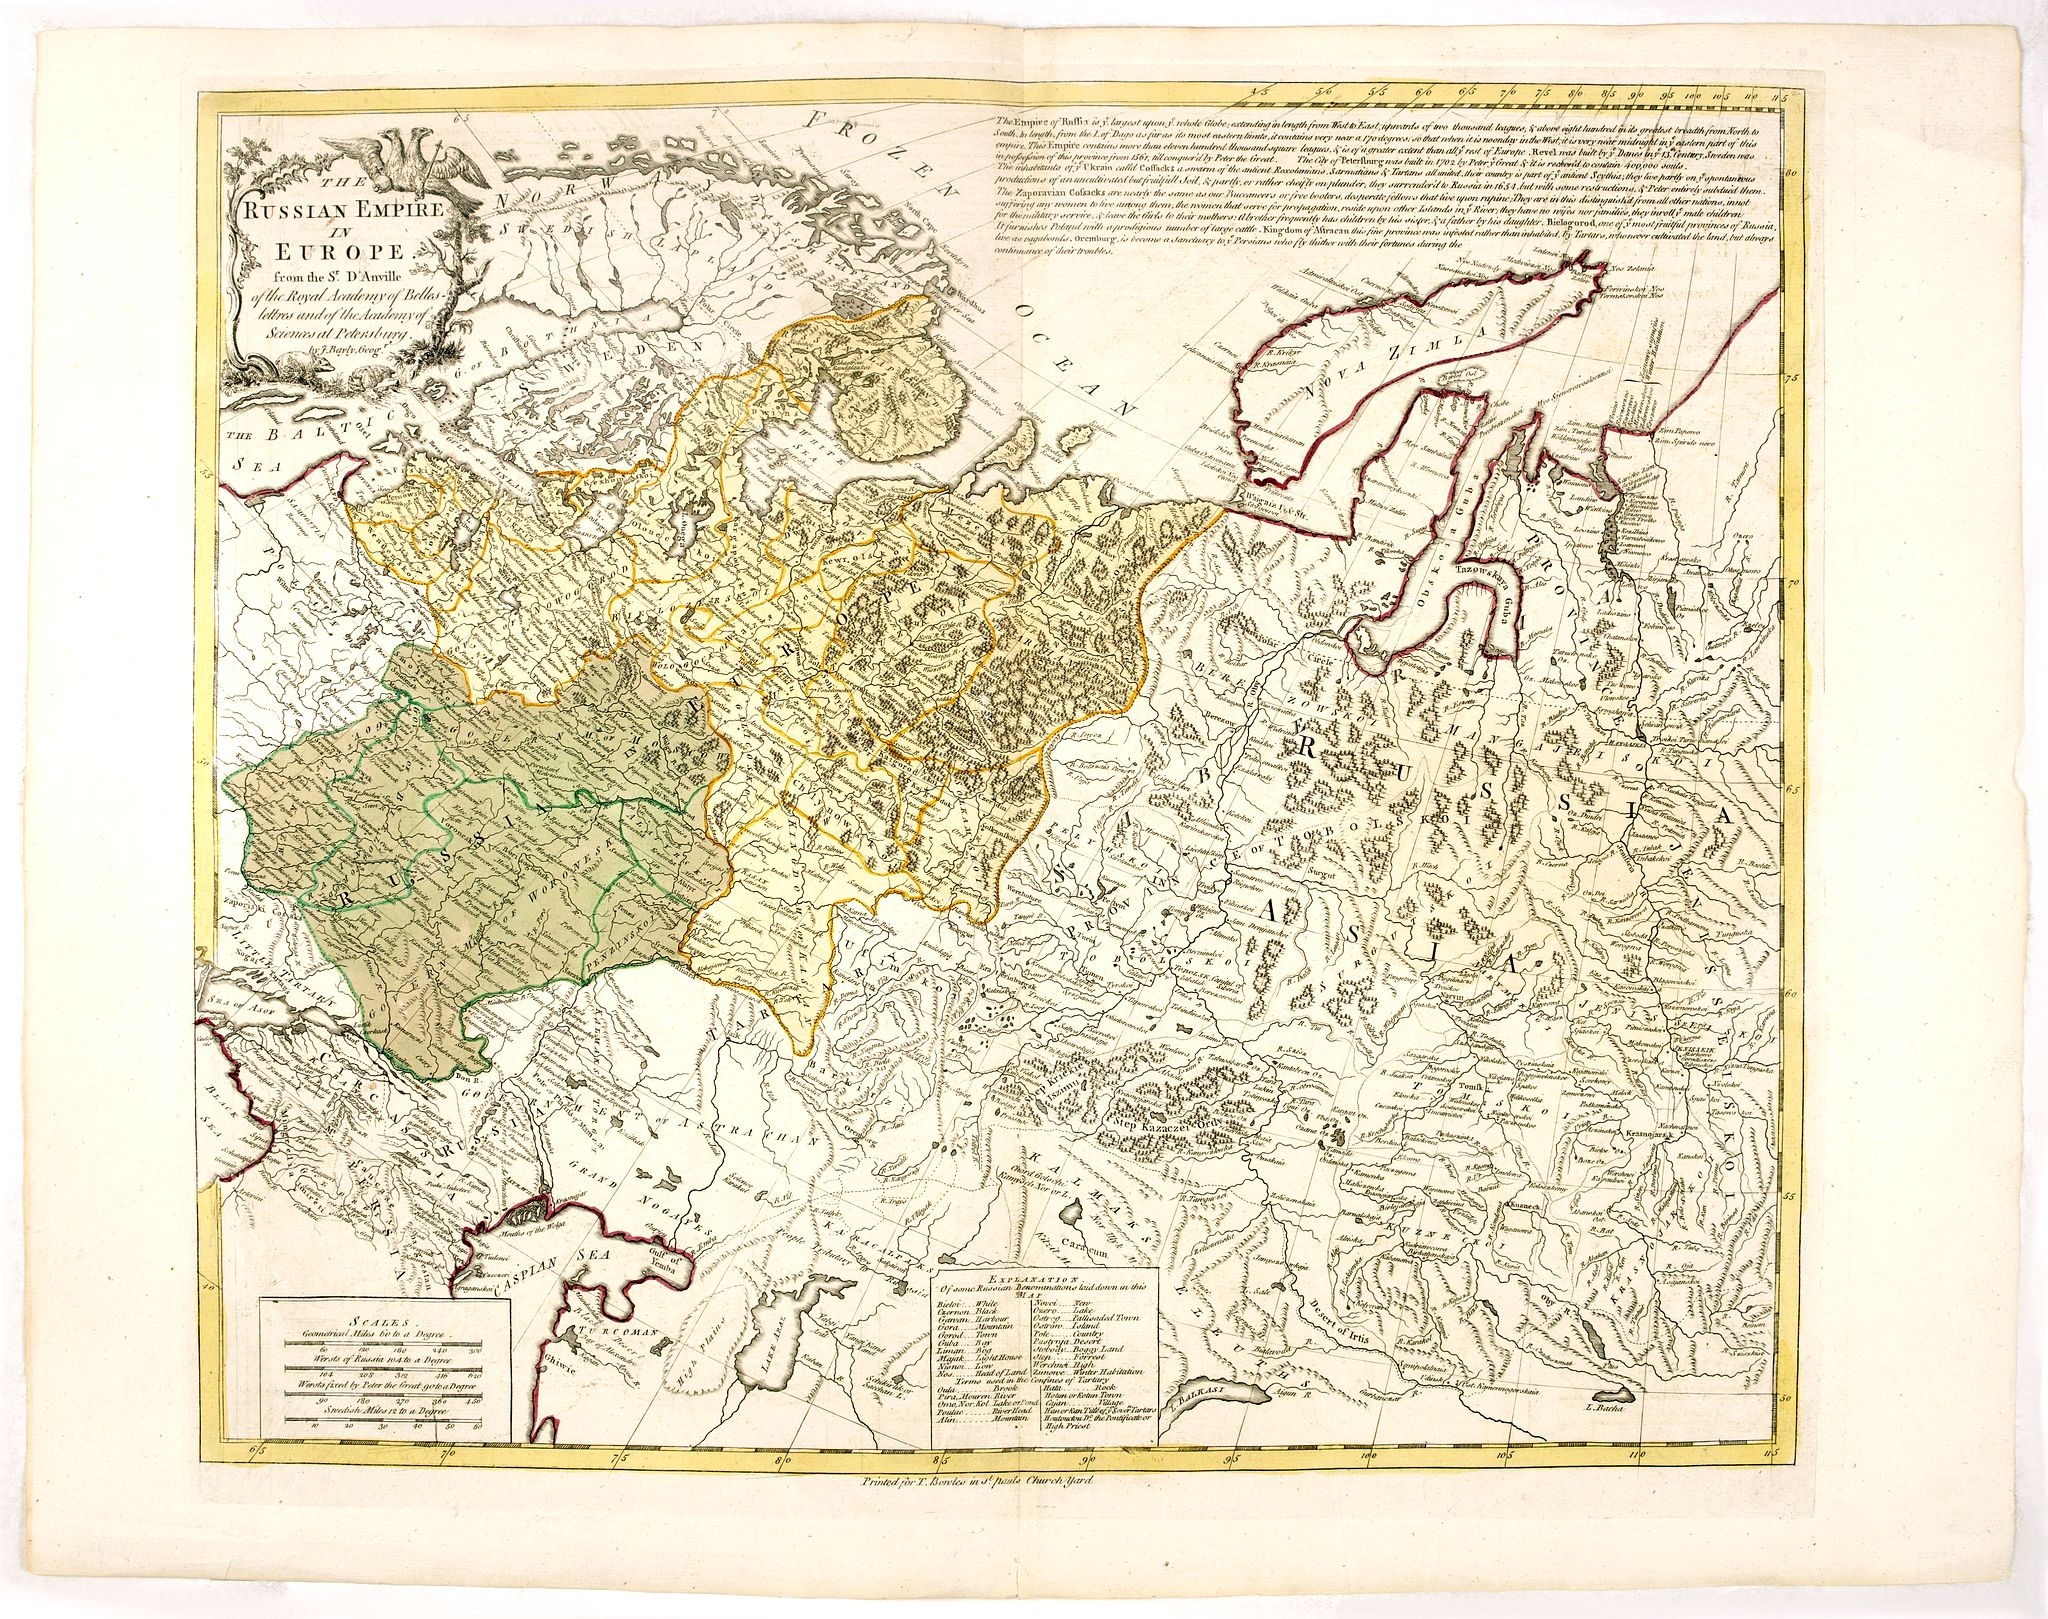 BOWLES, T. -  Russian Empire in Europe from the Dr. D'Anville of the Royal Academy. . .